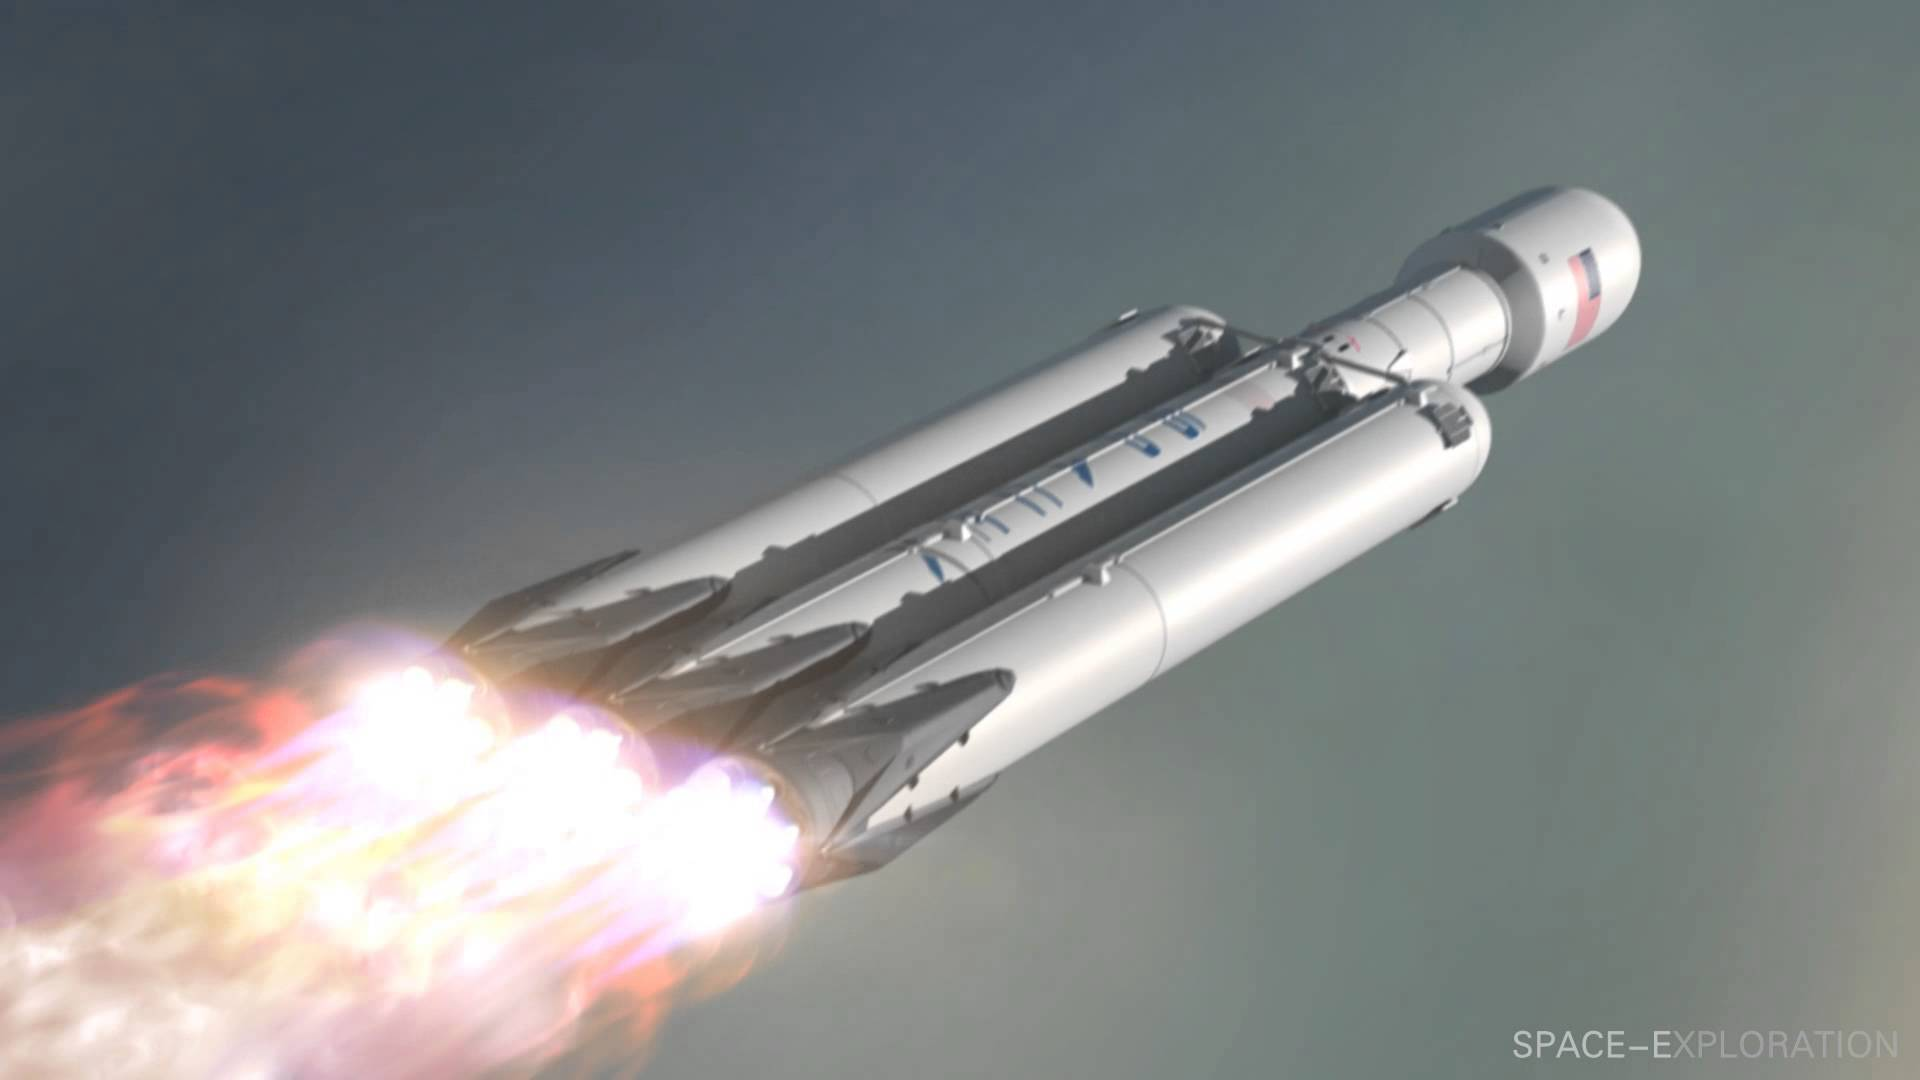 SpaceX Falcon Heavy: Mysterious Sighting Sparks Launch